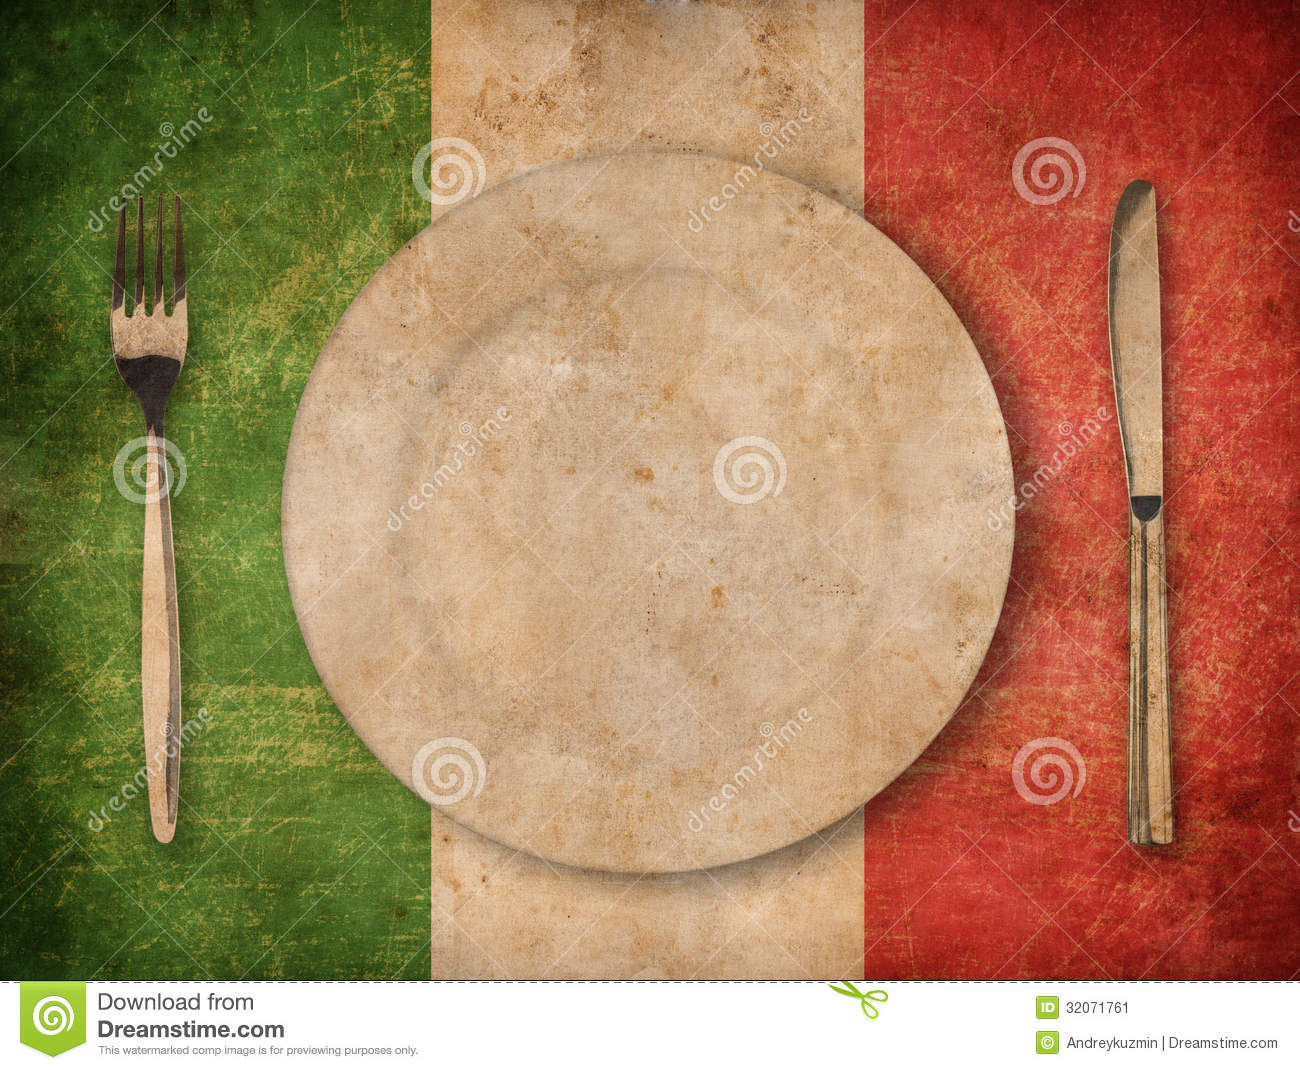 Plate Fork And Knife On Grunge Italian Flag Background